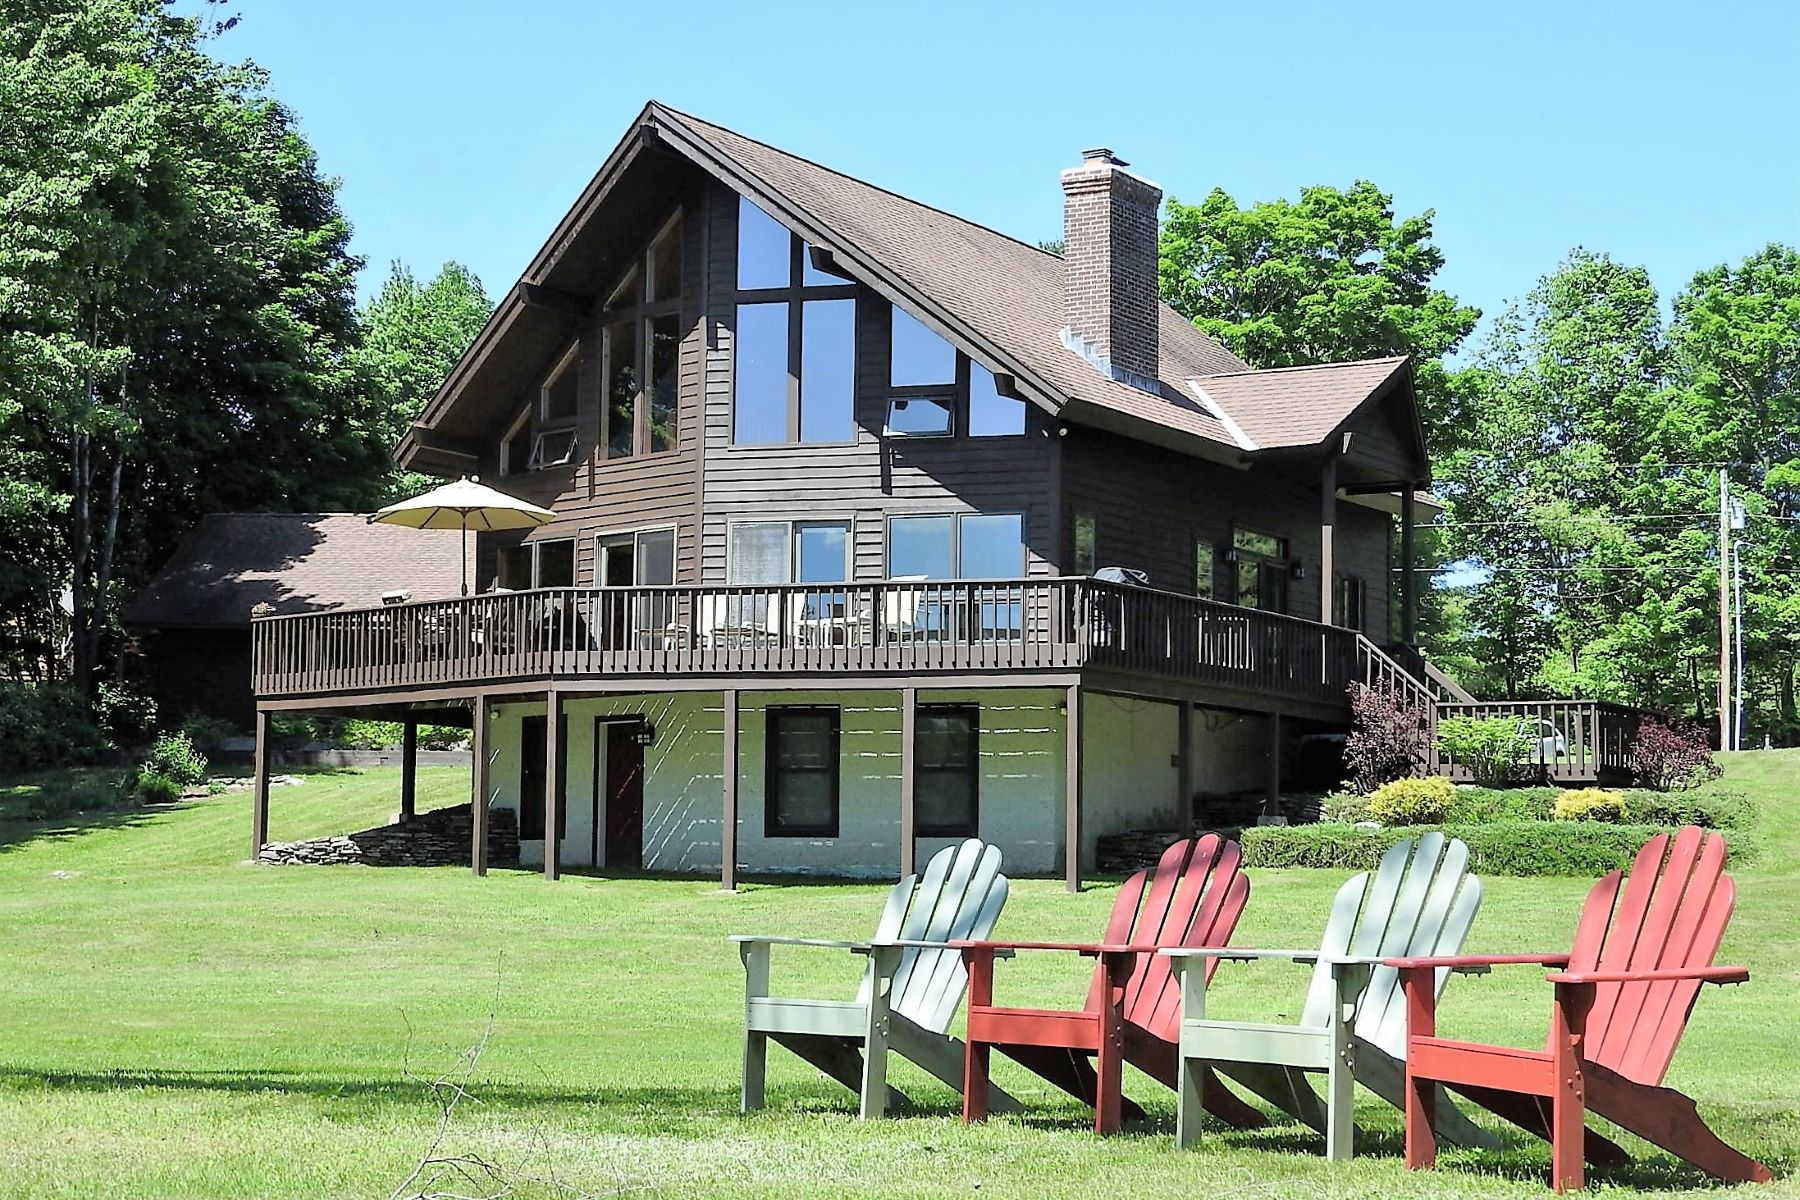 Single Family Home for Sale at 109 Johnson Spooner Road, Castleton 109 Johnson Spooner Rd Castleton, Vermont, 05735 United States